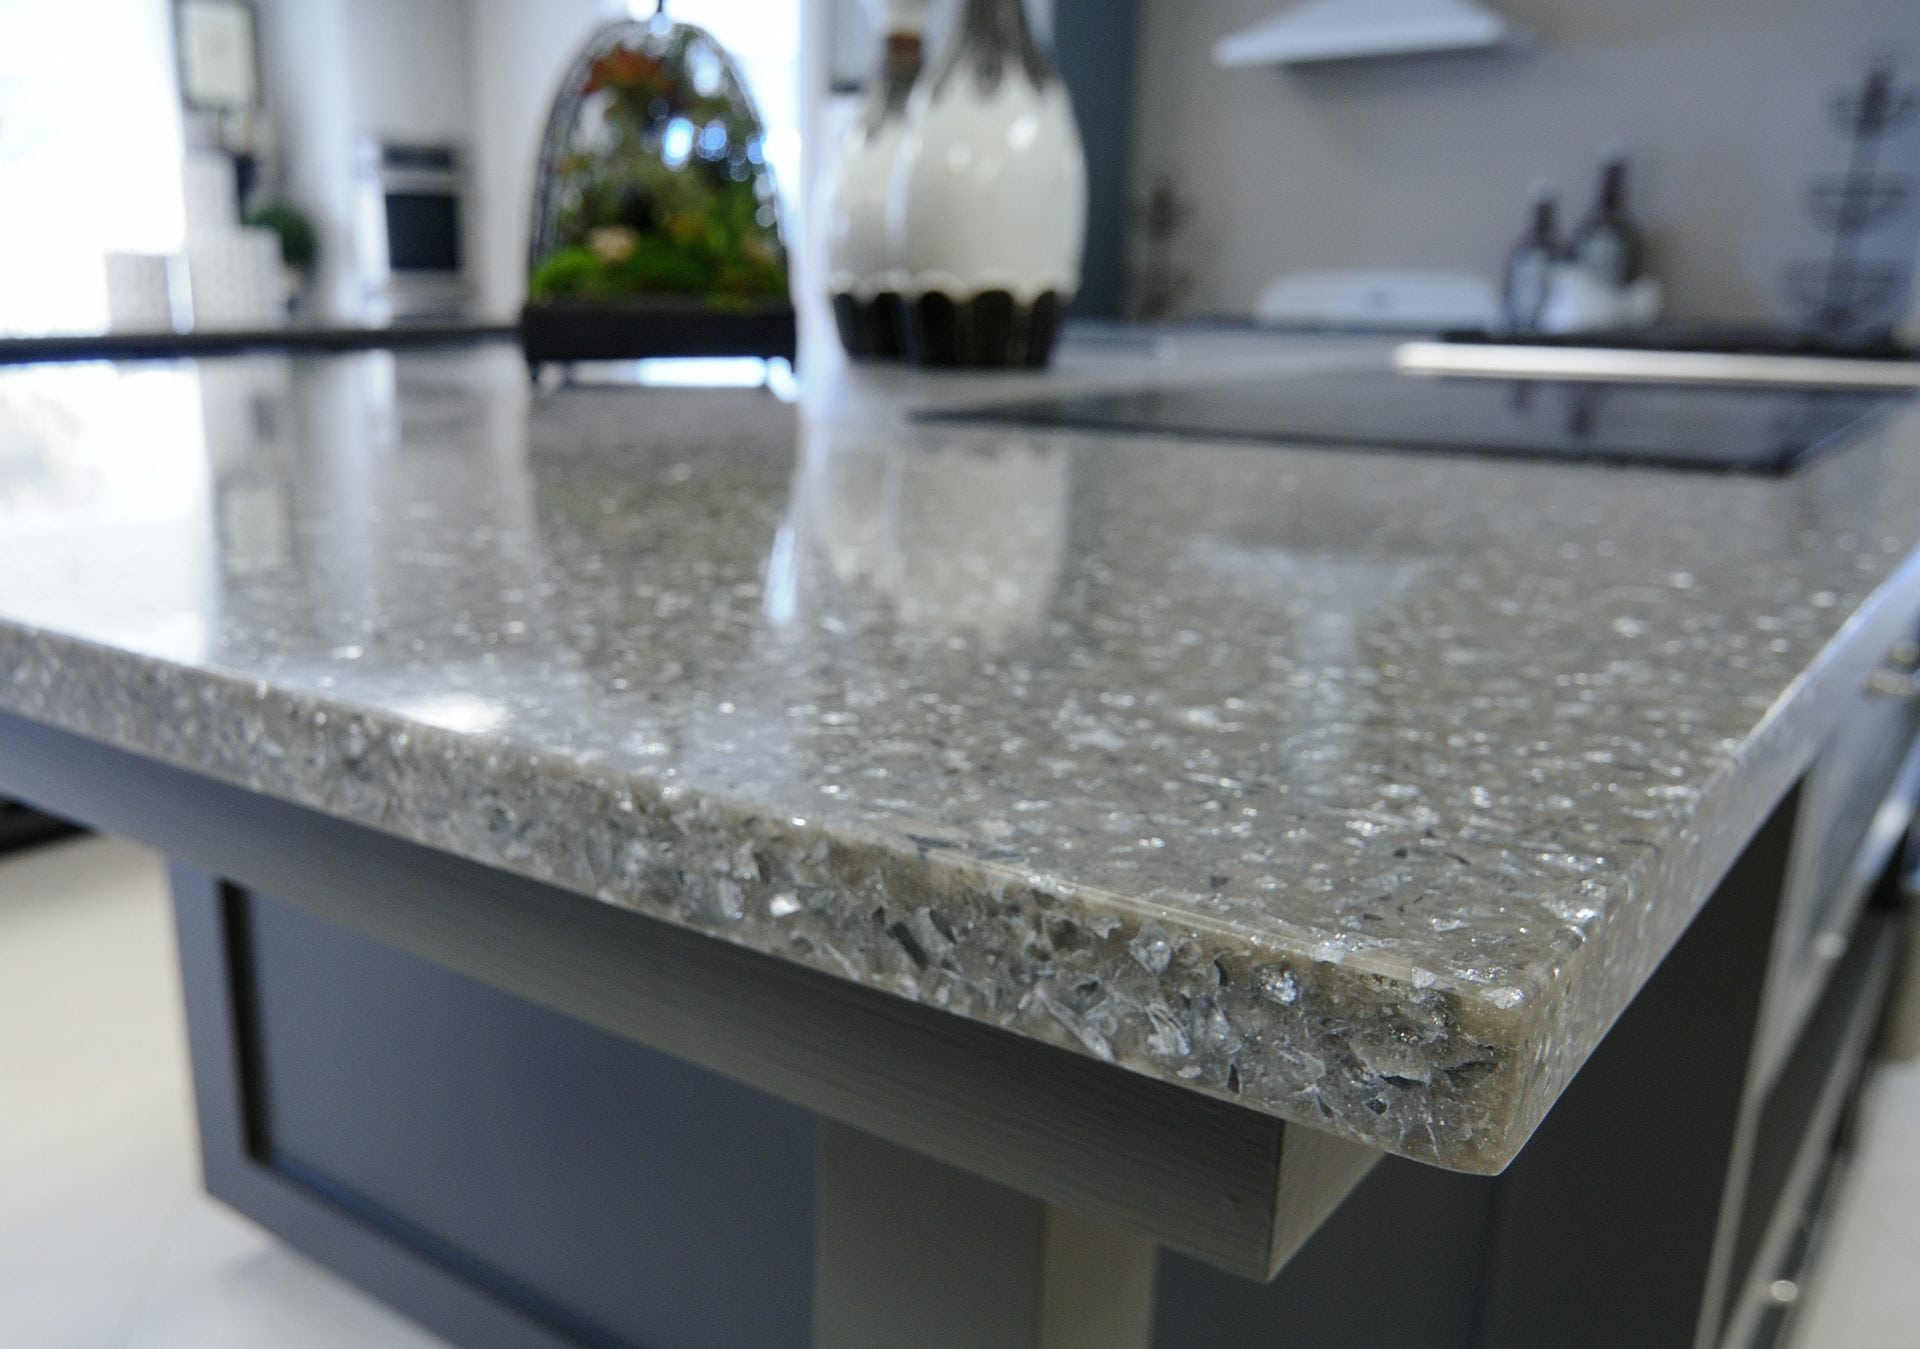 Quartz Countertops Price Granite Countertops Chicago Il Quartz Countertops Chicago Kitchen Countertops Chicago Il